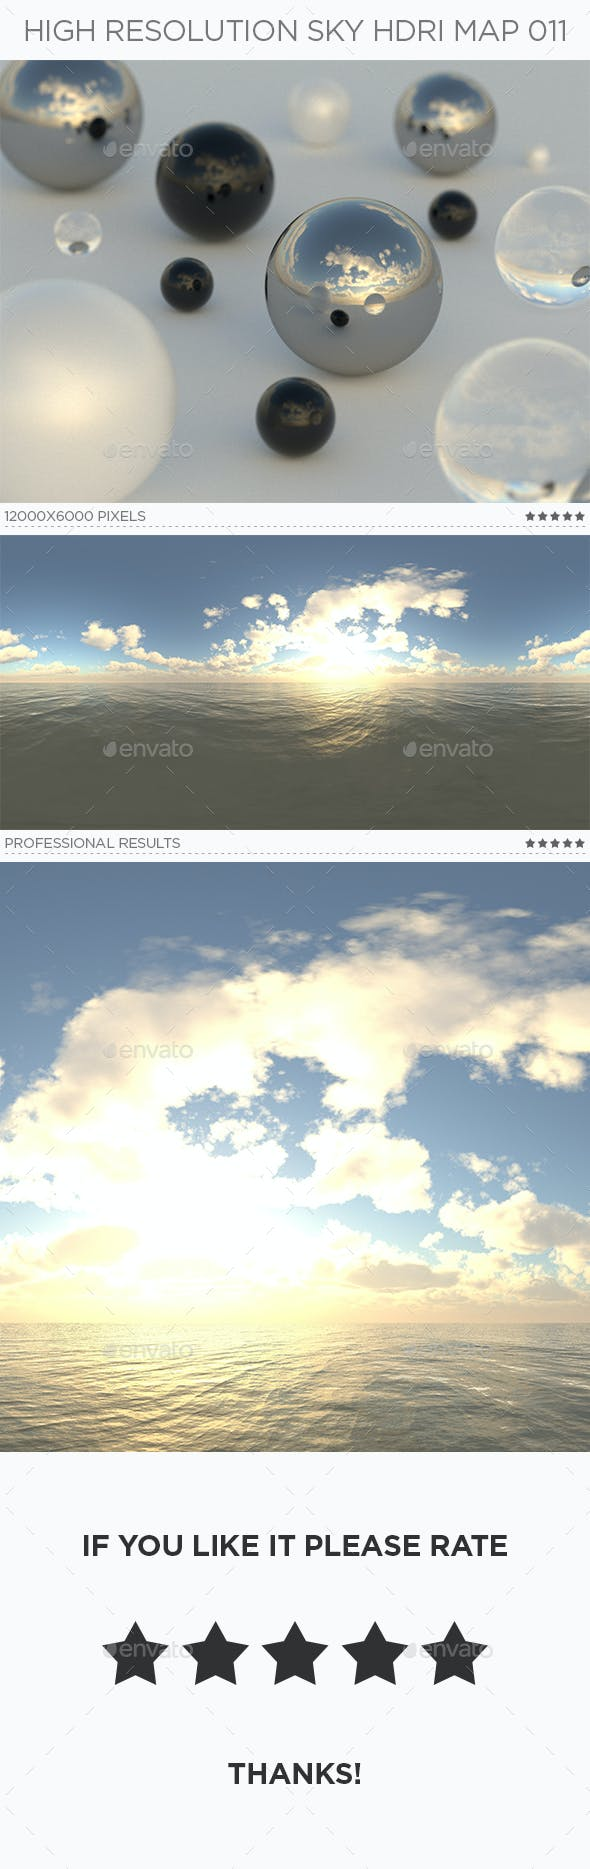 High Resolution Sky HDRi Map 011 - 3DOcean Item for Sale